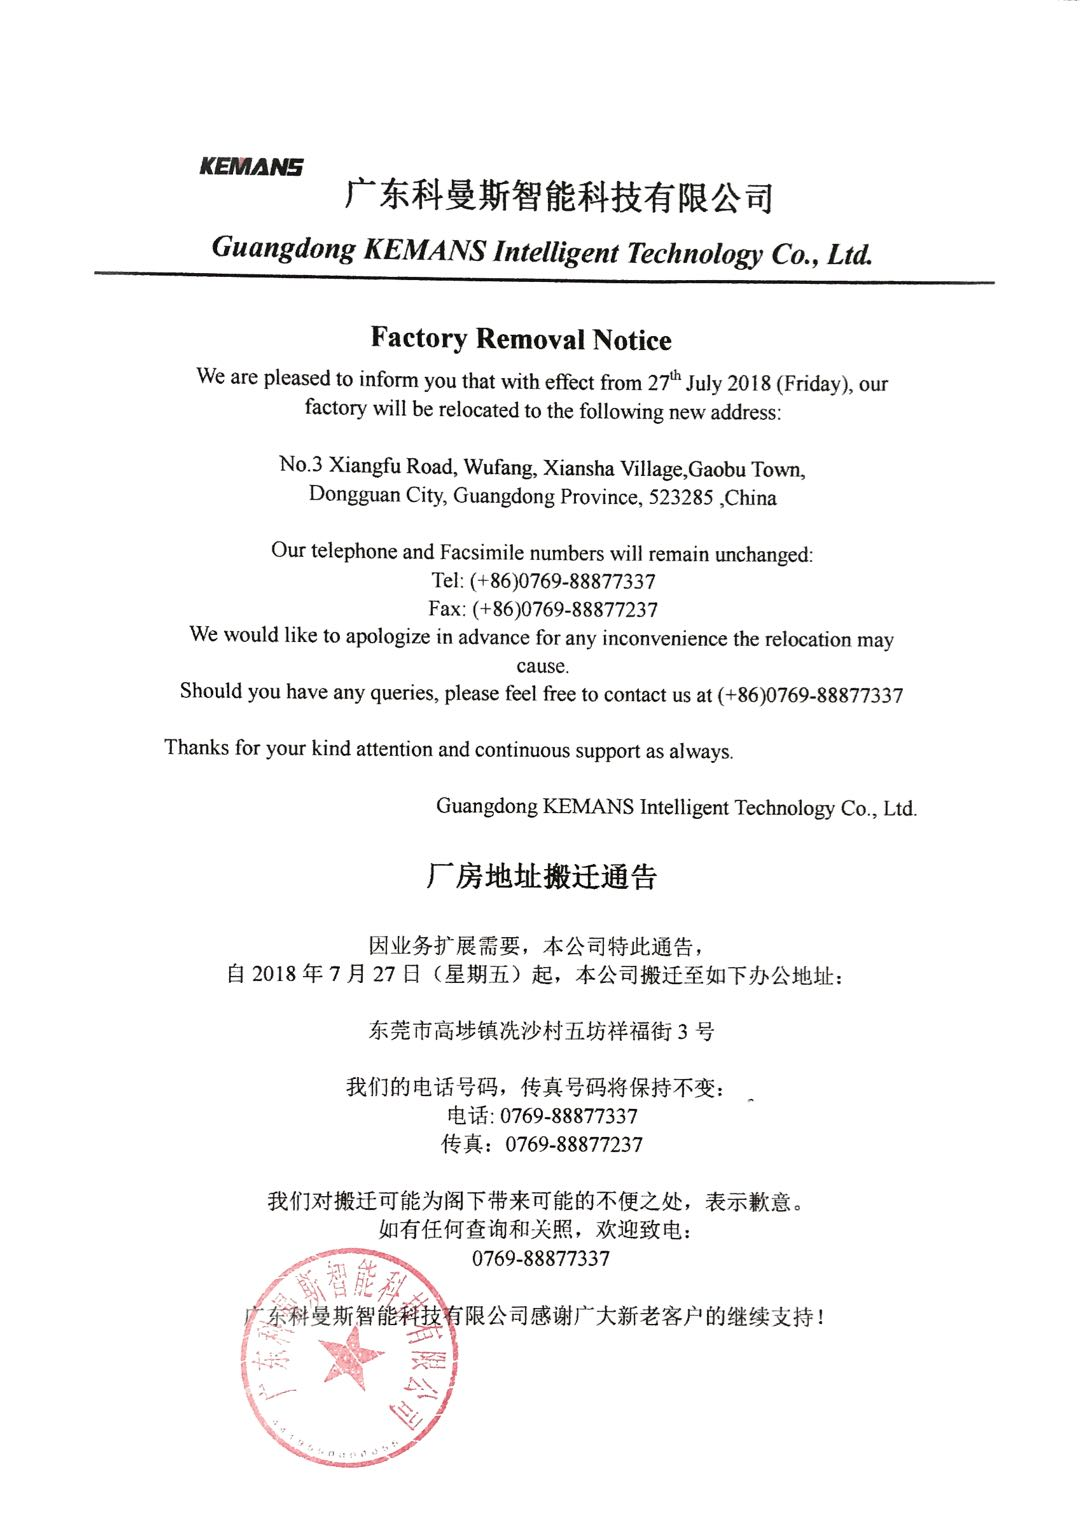 Factory Removal Notice(图1)